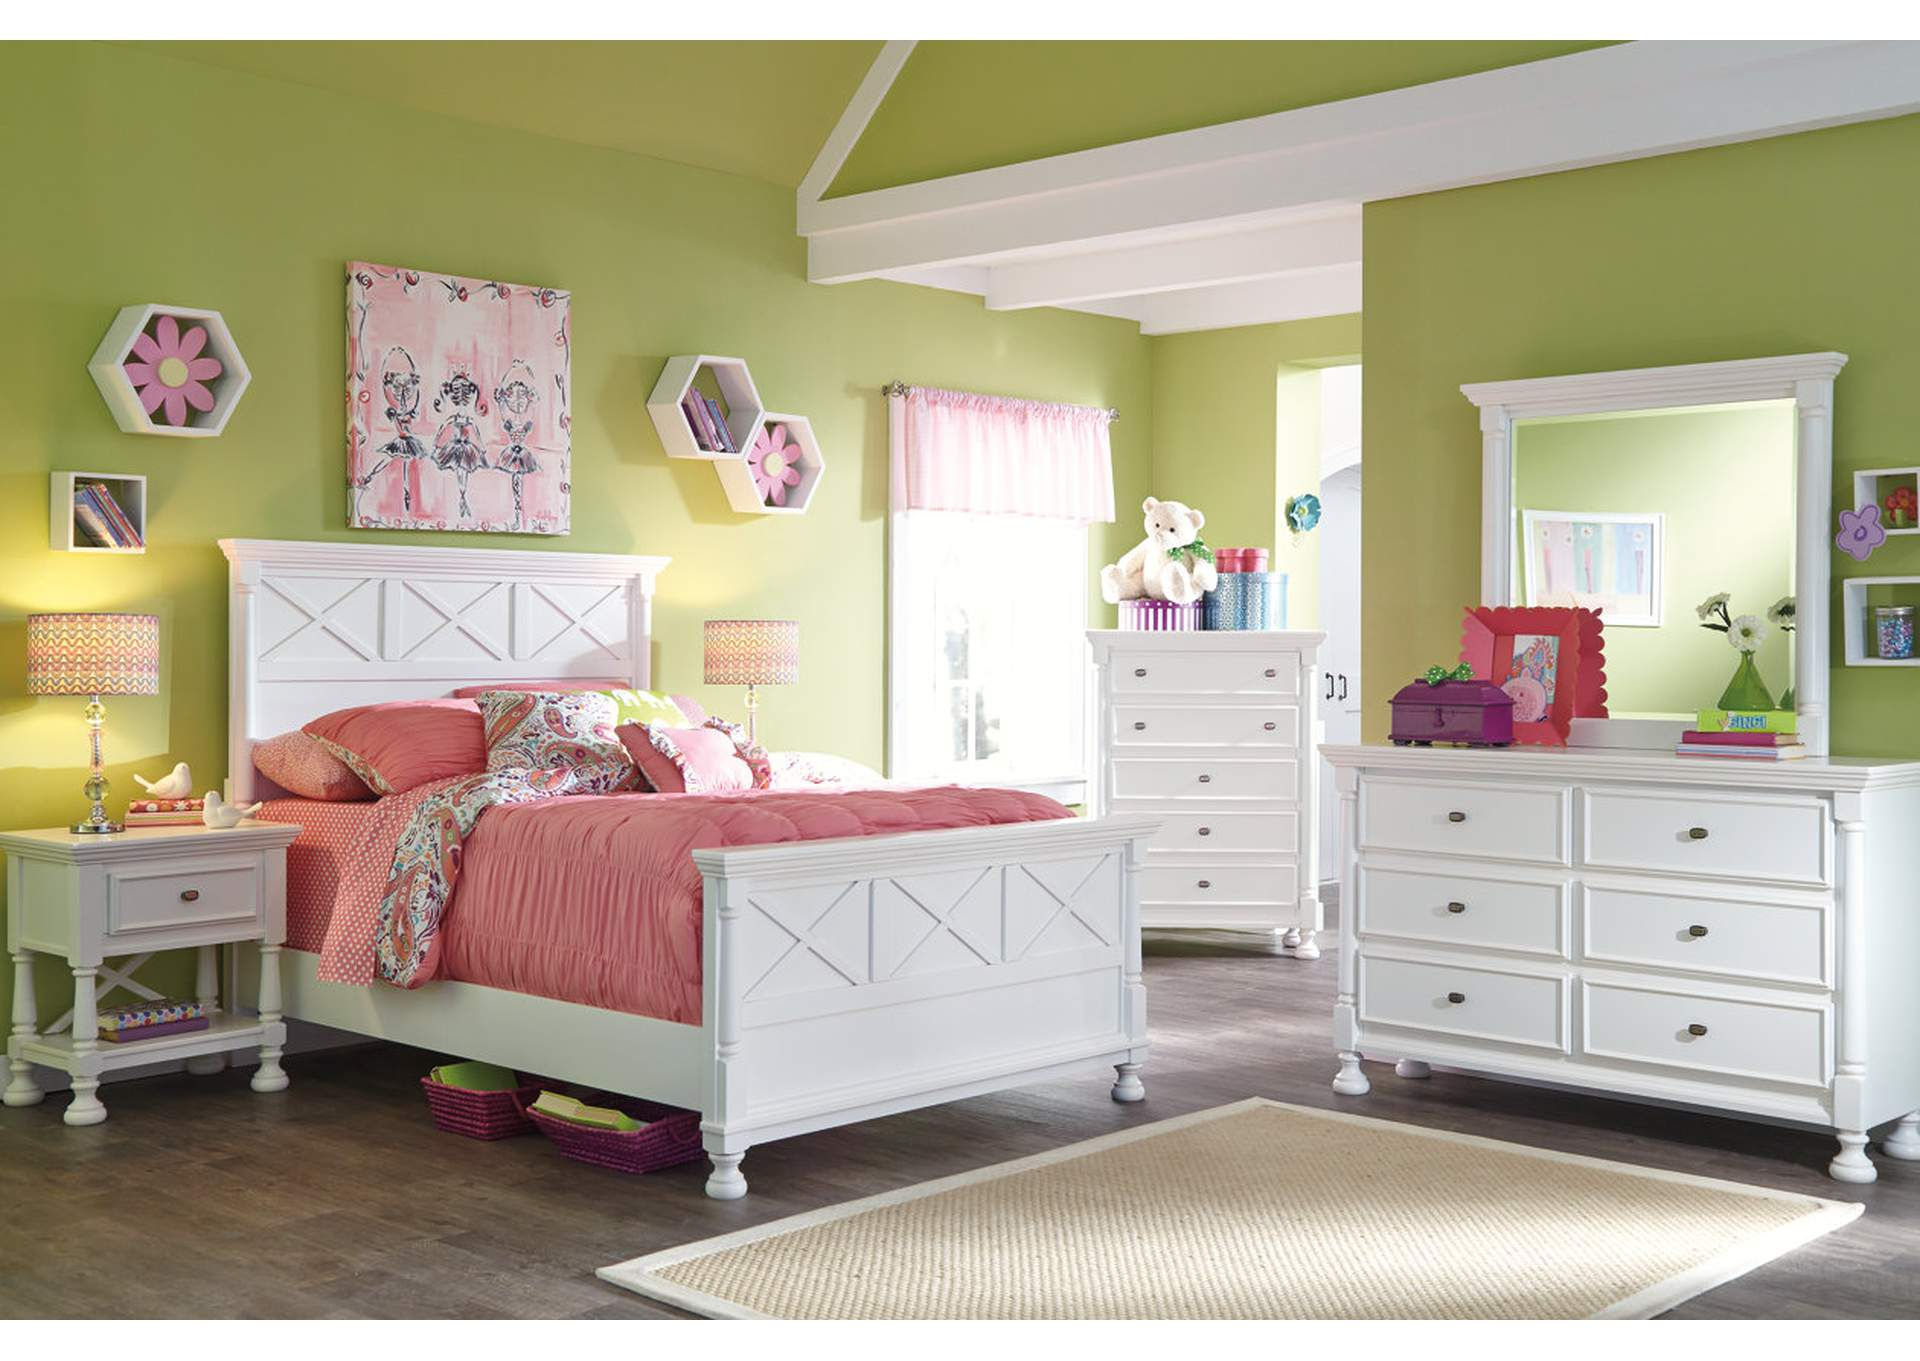 Kaslyn Full Panel Bed w/Dresser, Mirror, Chest & Nightstand,Signature Design By Ashley